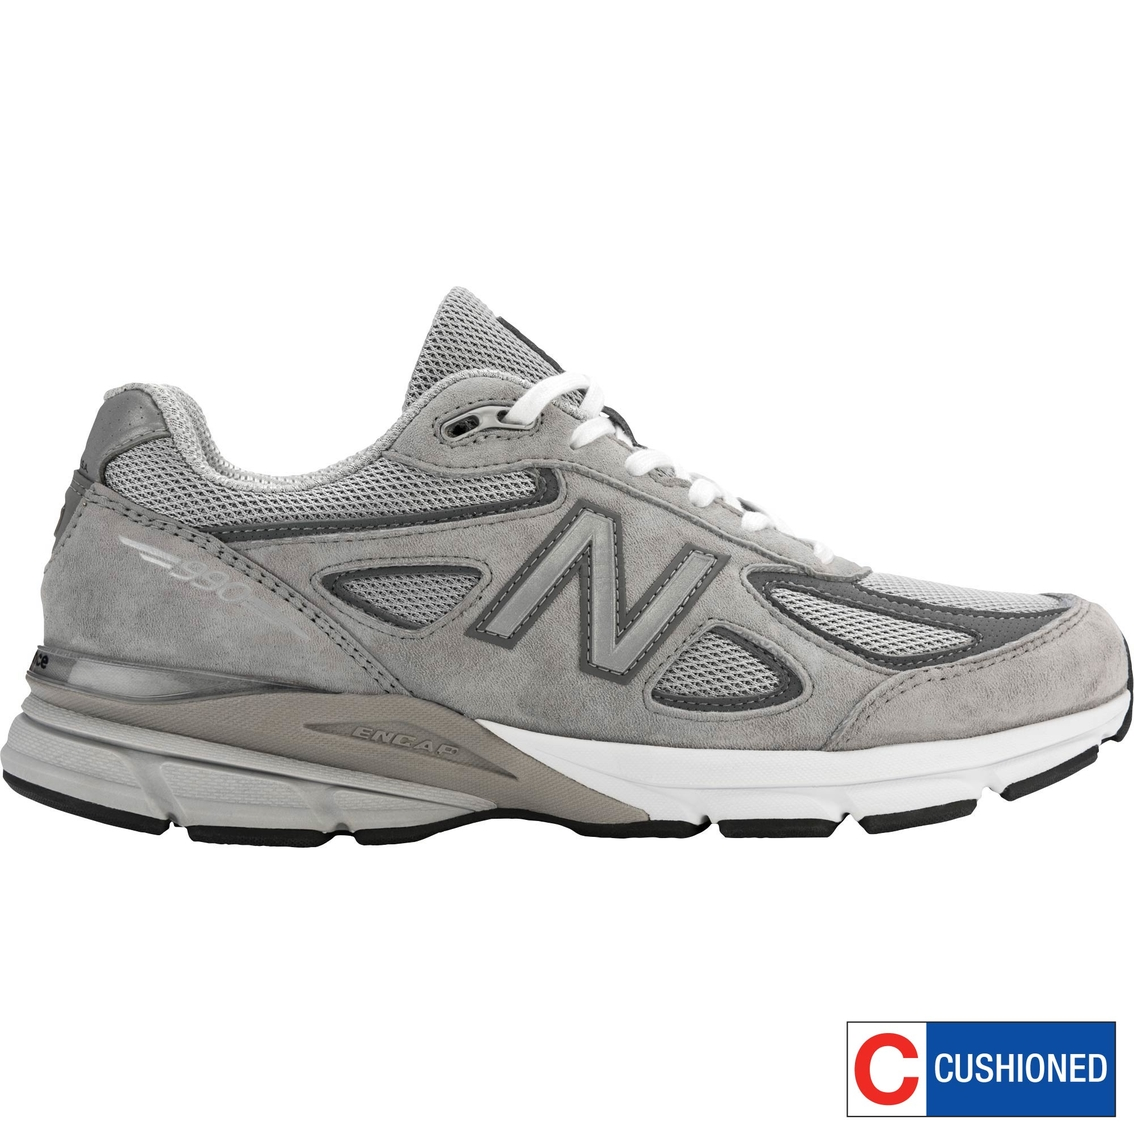 c09f829f9b64 New Balance Men s M990gl4 Running Shoe